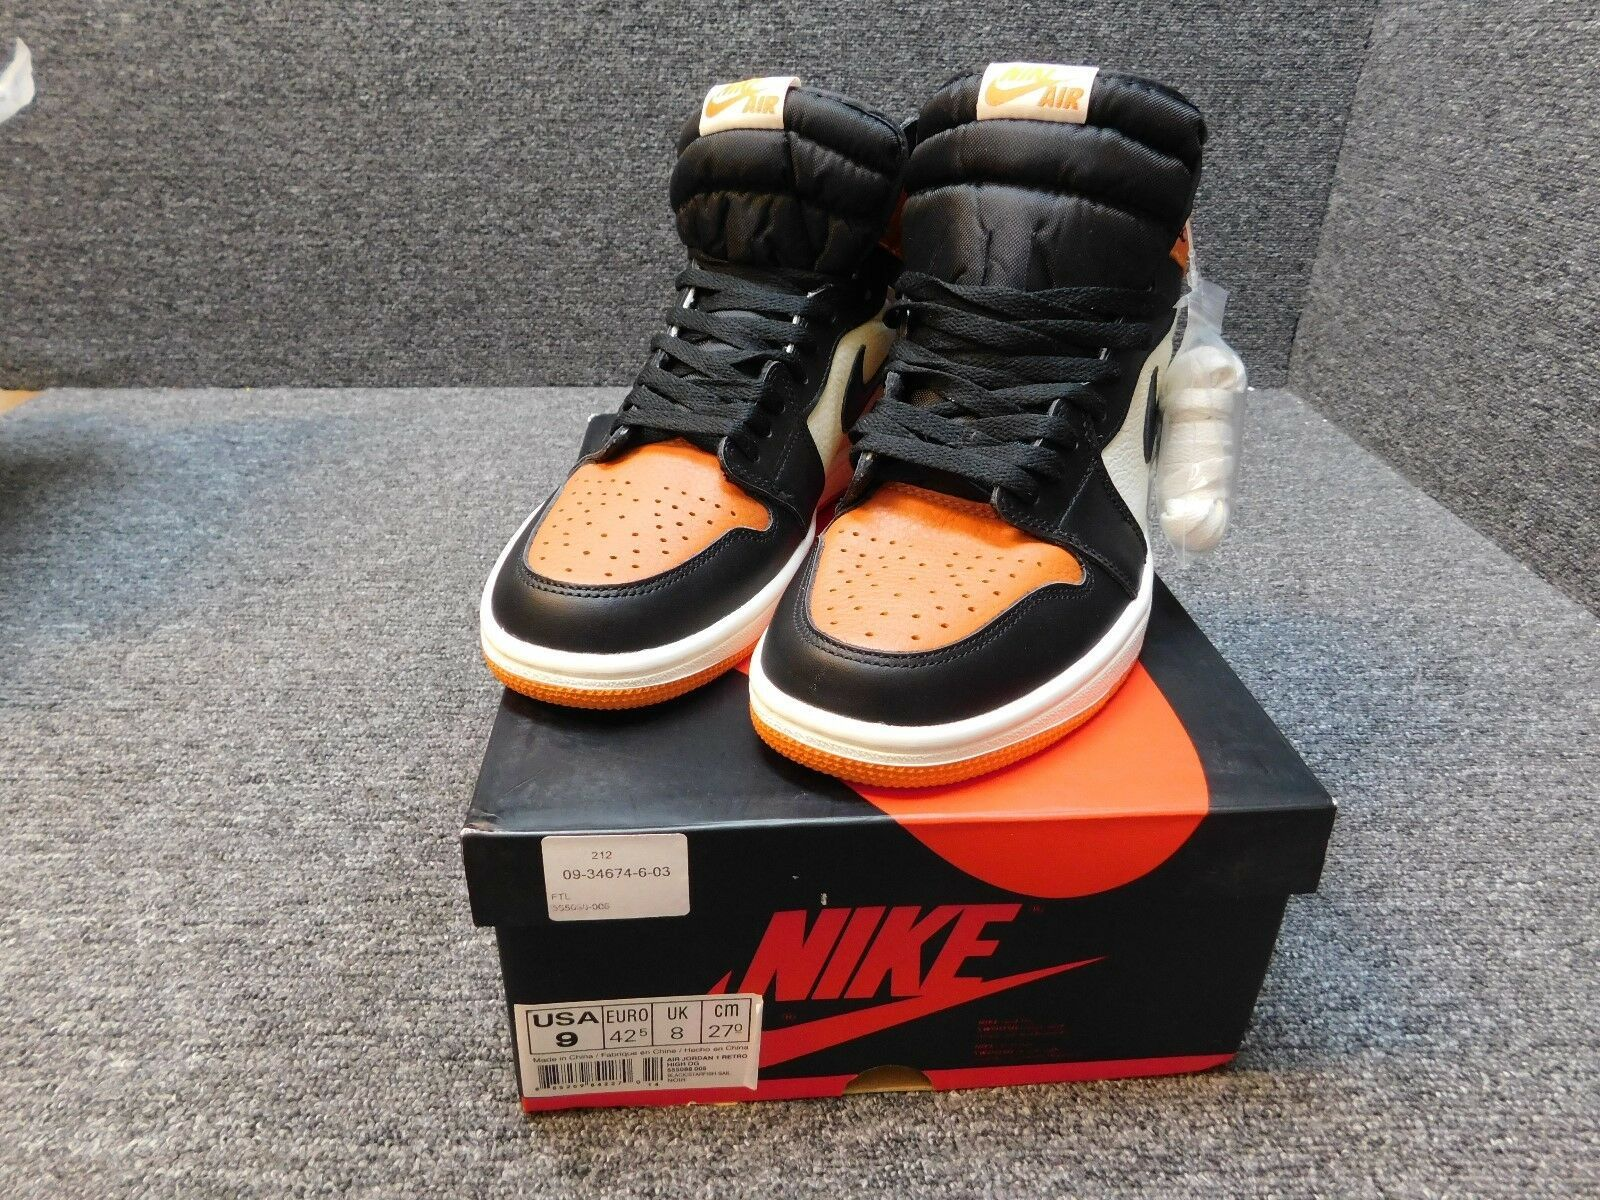 promo code 47880 e0881 Air Jordan 1 Retro High OG